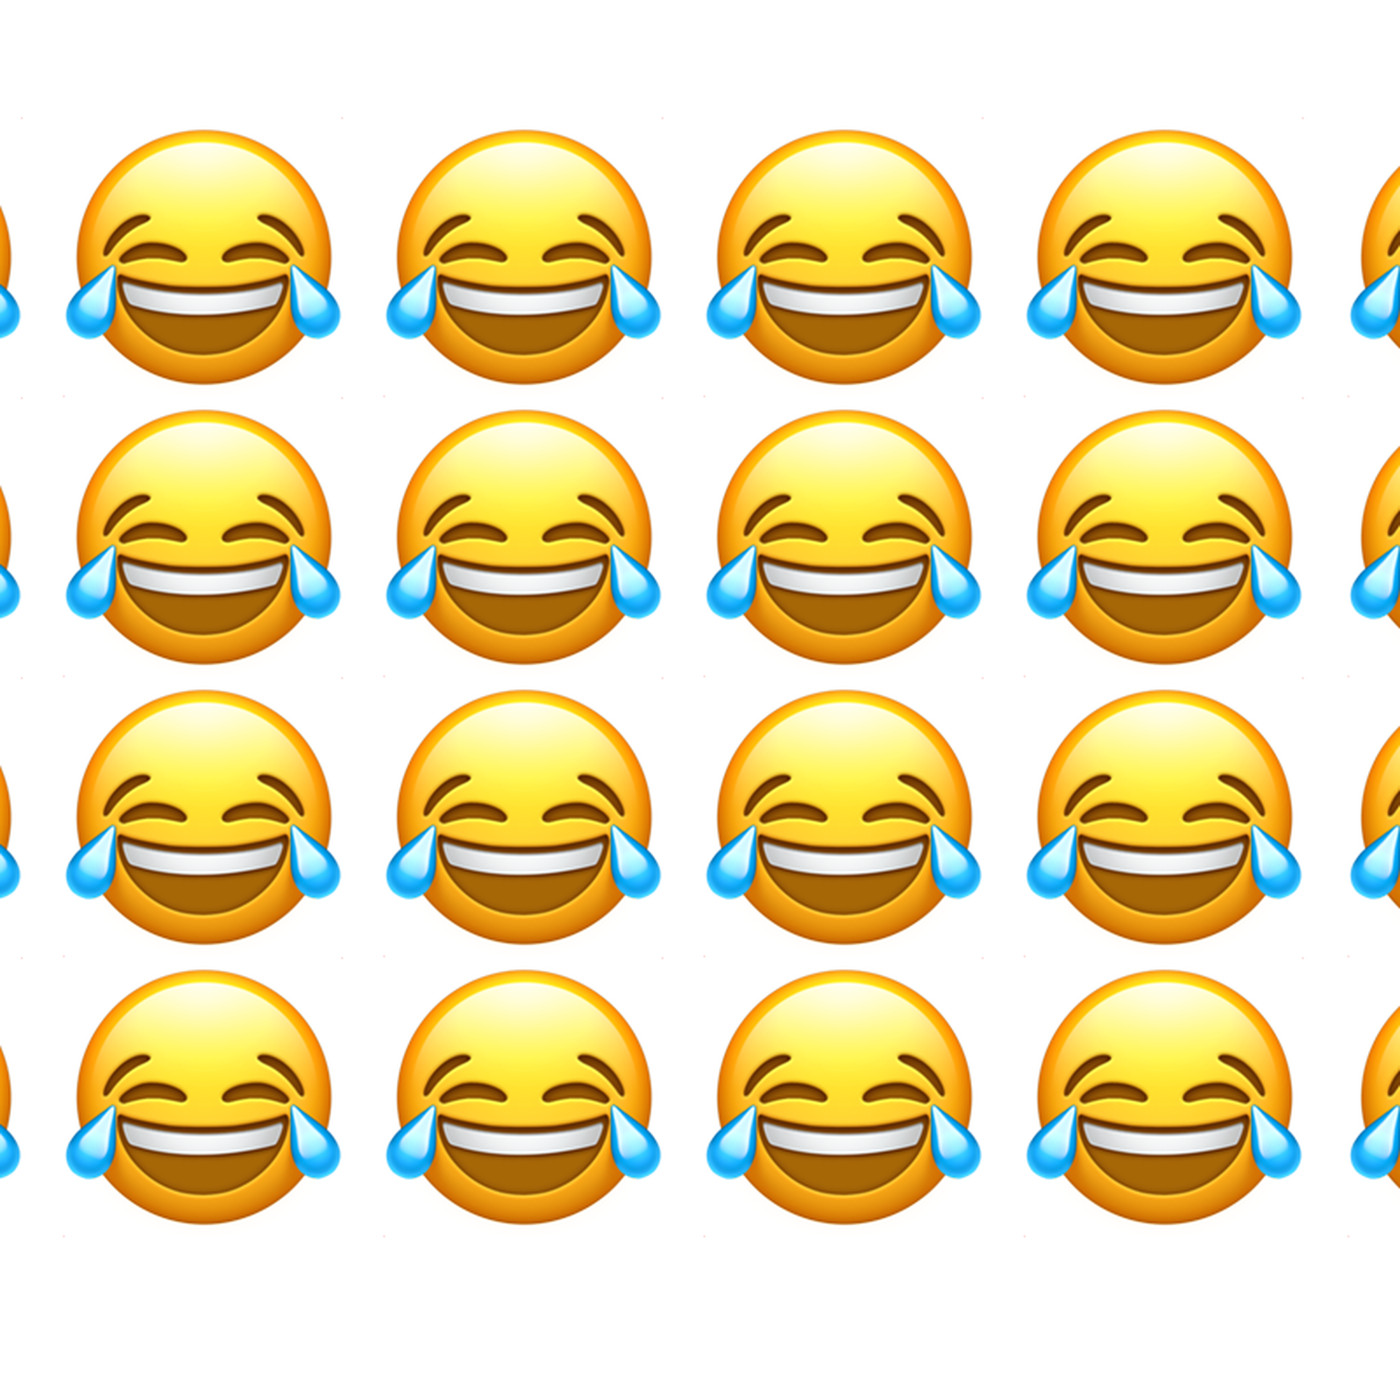 The Face with Tears of Joy emoji is the most popular - The Verge 53da6d1e637a6